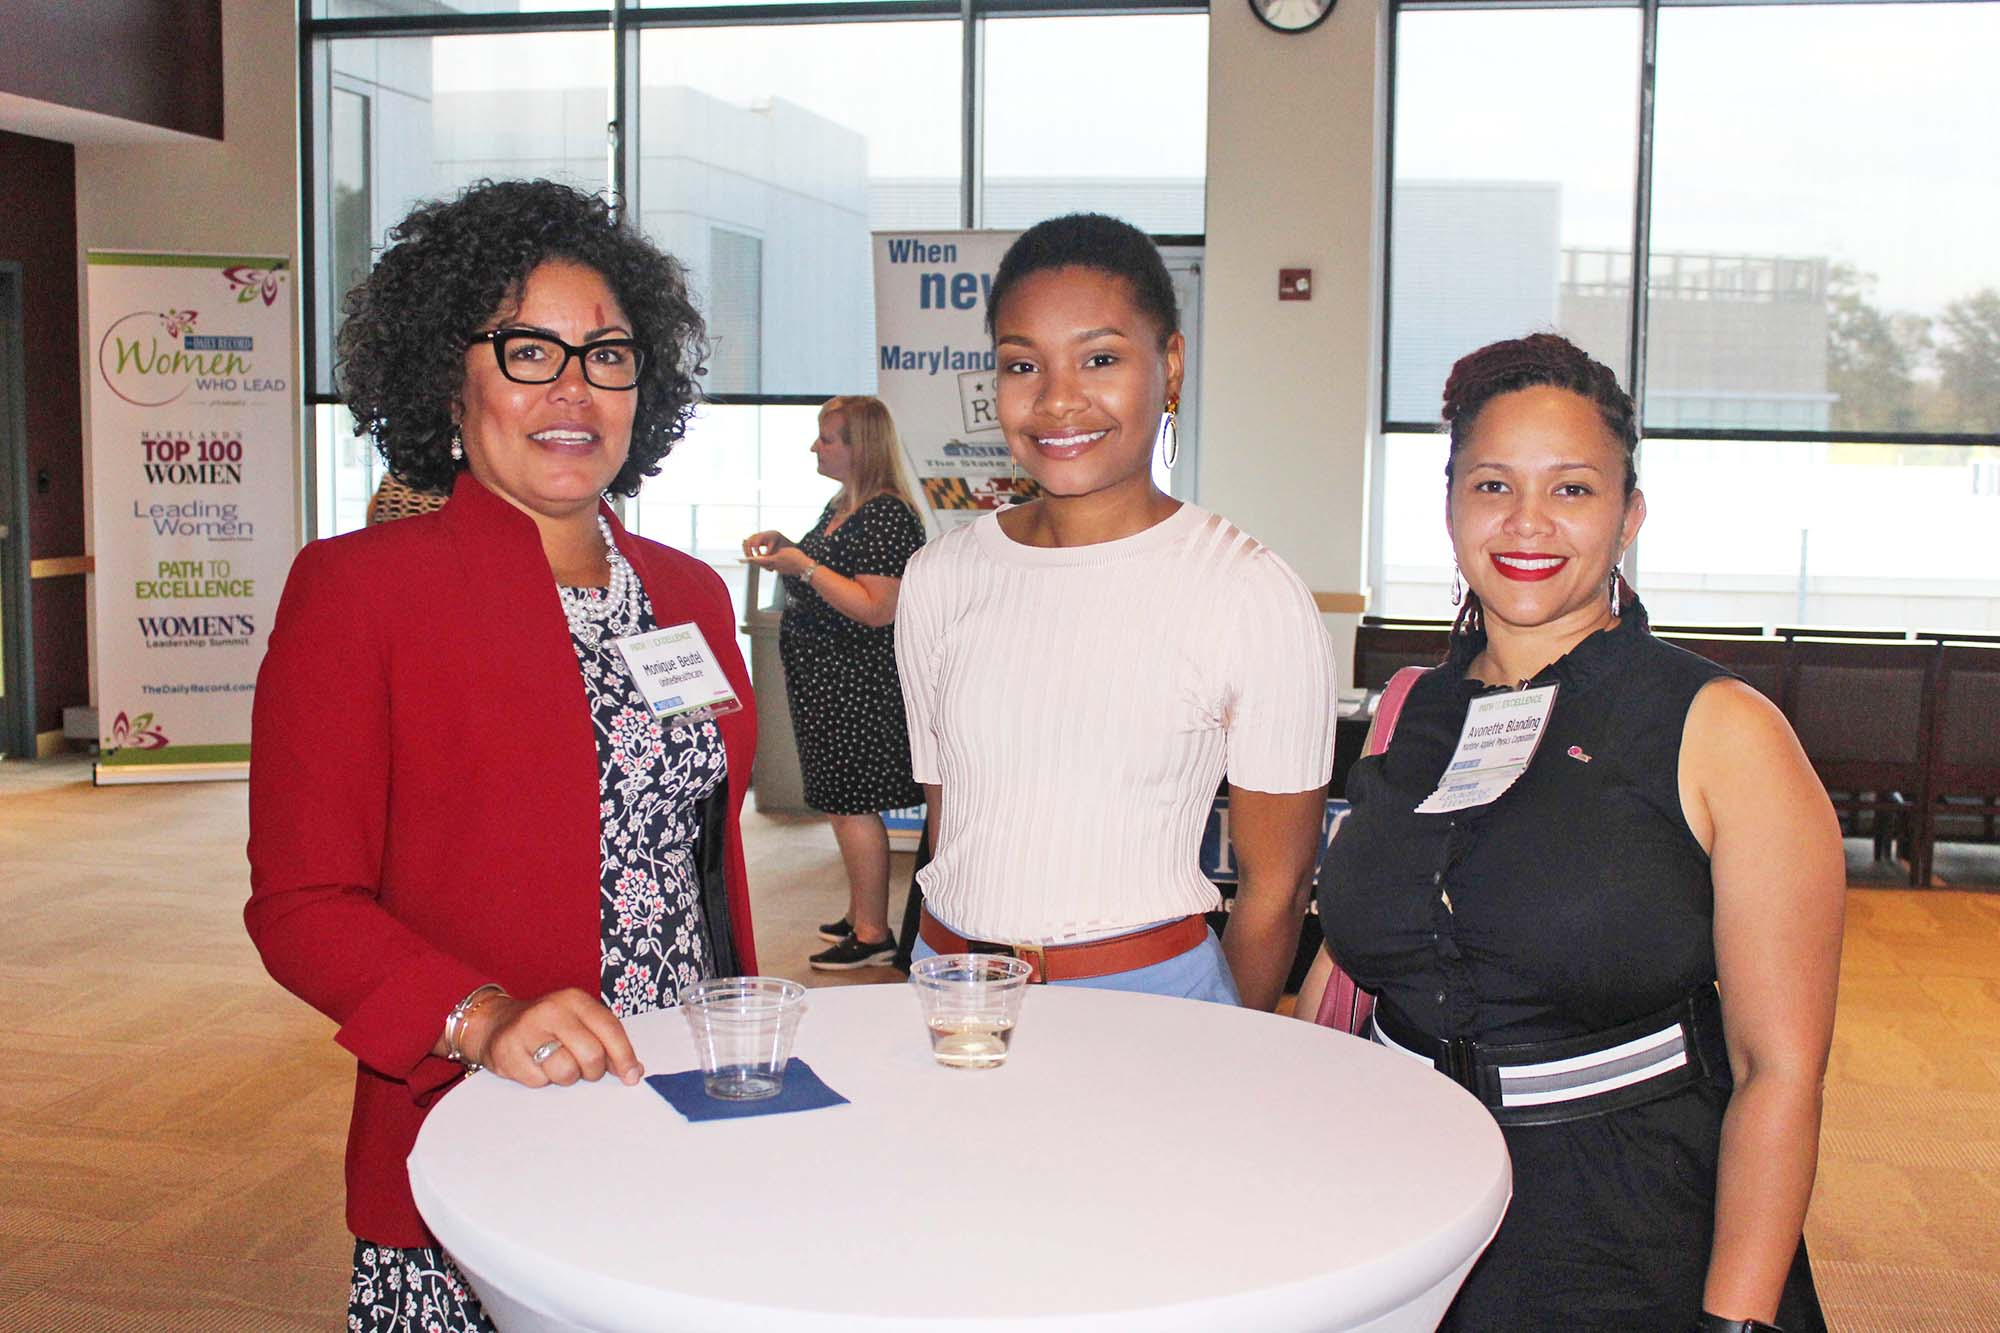 From left, Monique Beutel, United Health Care; Christen Johnson; and Avonette Blanding, Maritime Applied Physics Corporation, chat during the networking event. (Photo by Patrick Brannan)